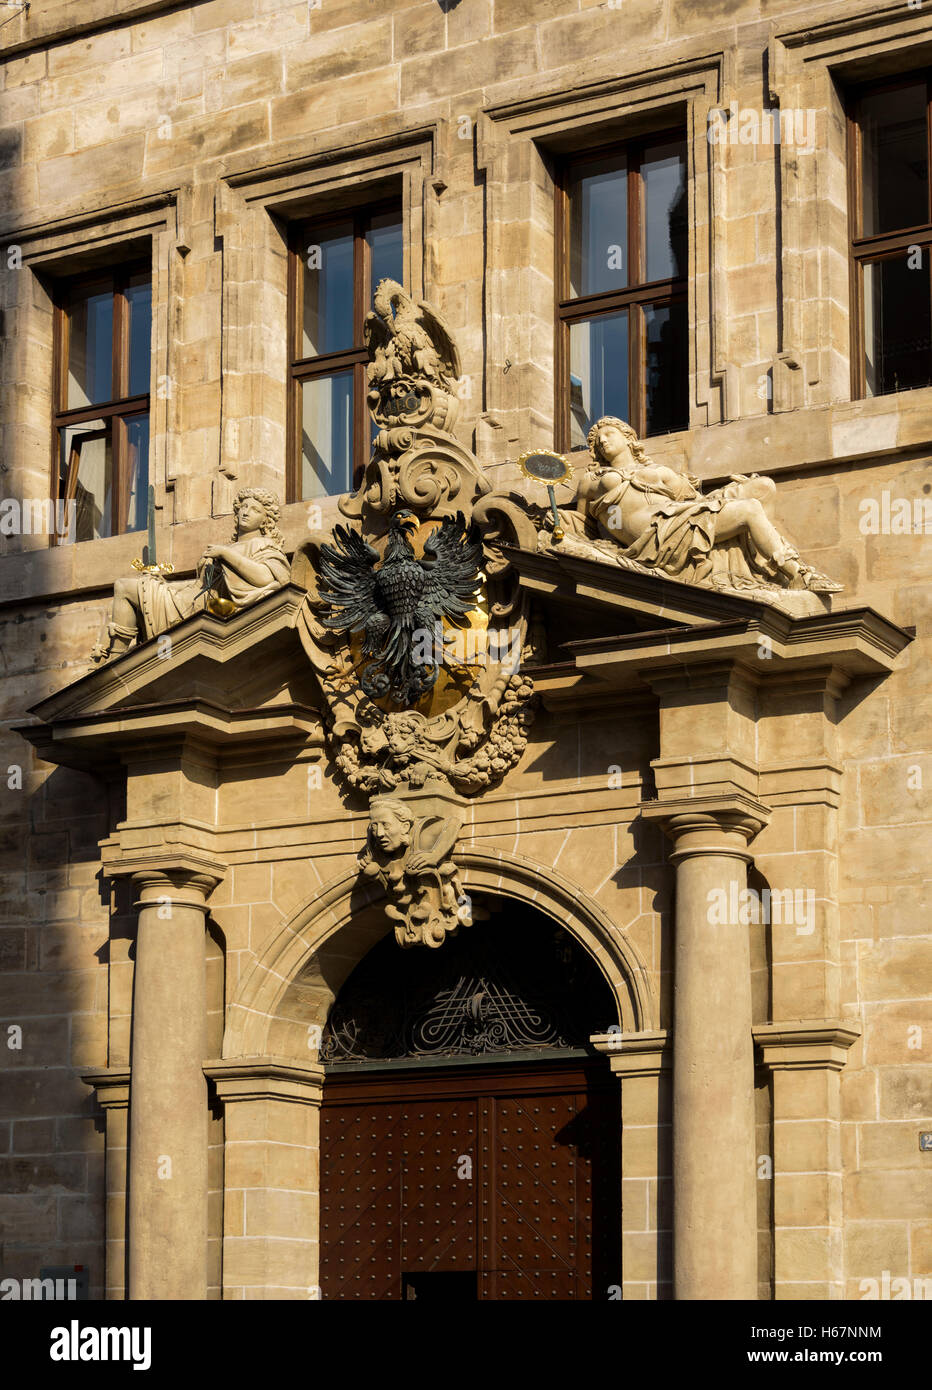 Ornate pediment over doorway of the town hall, Nuremberg. - Stock Image